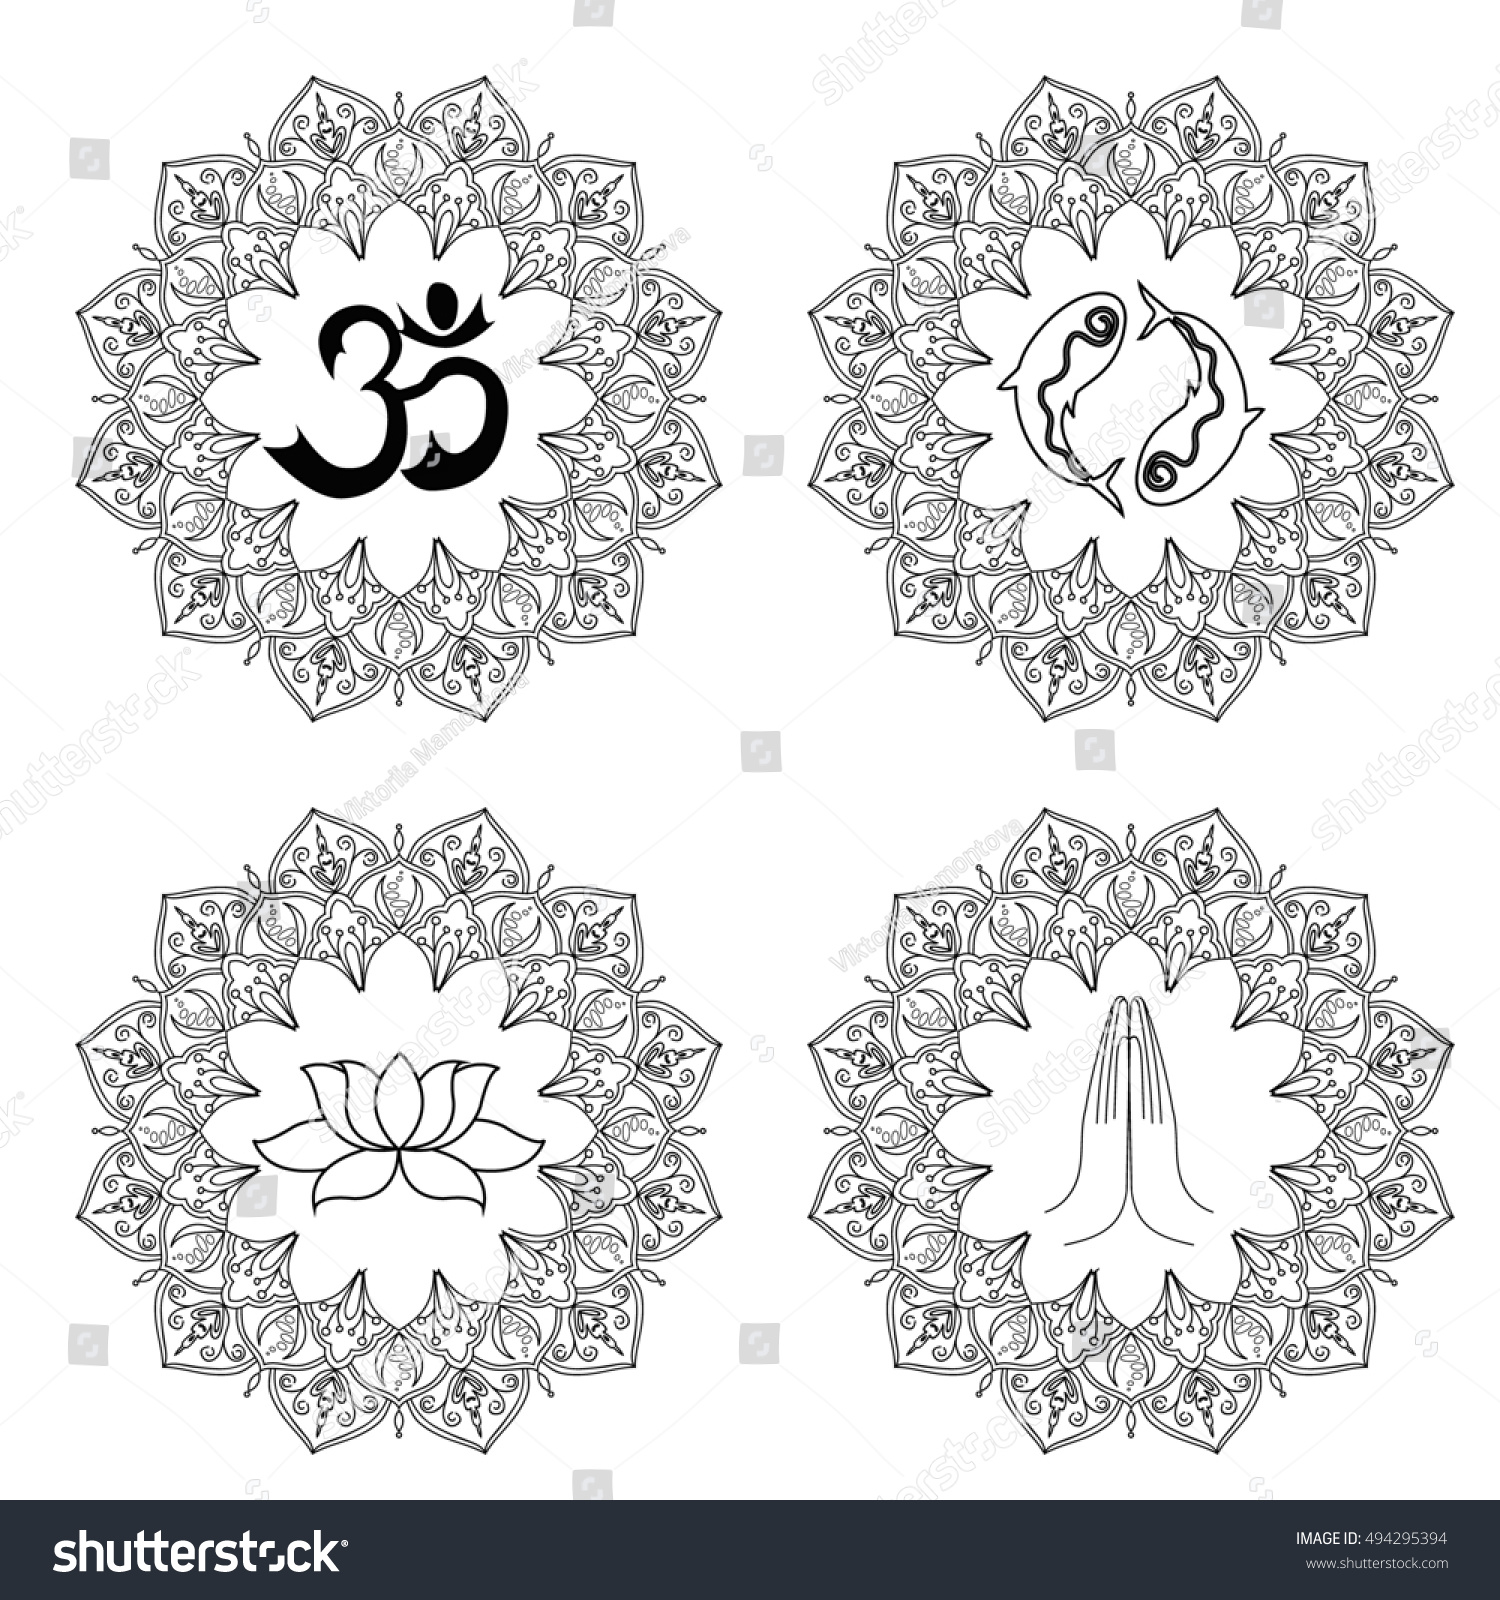 Set Religion Symbols Buddhism Black Silhouettes Stock Illustration